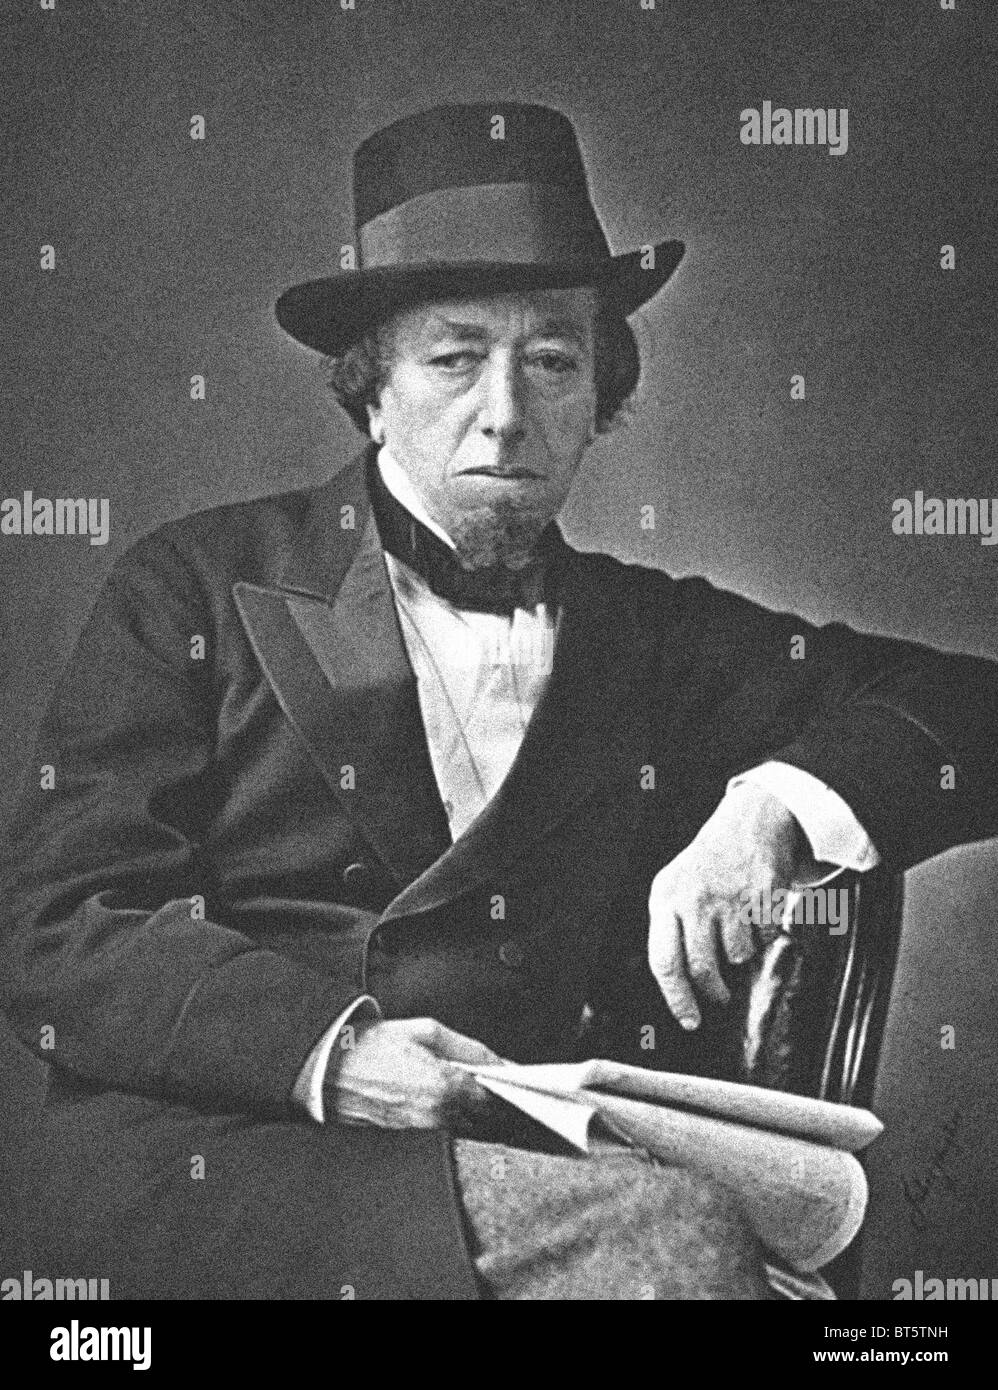 Benjamin Disraeli, 1st Earl of Beaconsfield, KG, PC, FRS, (21 December 1804 – 19 April 1881) was a British Prime Minister.From the archives of Press Portrait Service (formerly Press Portrait Bureau) Stock Photo